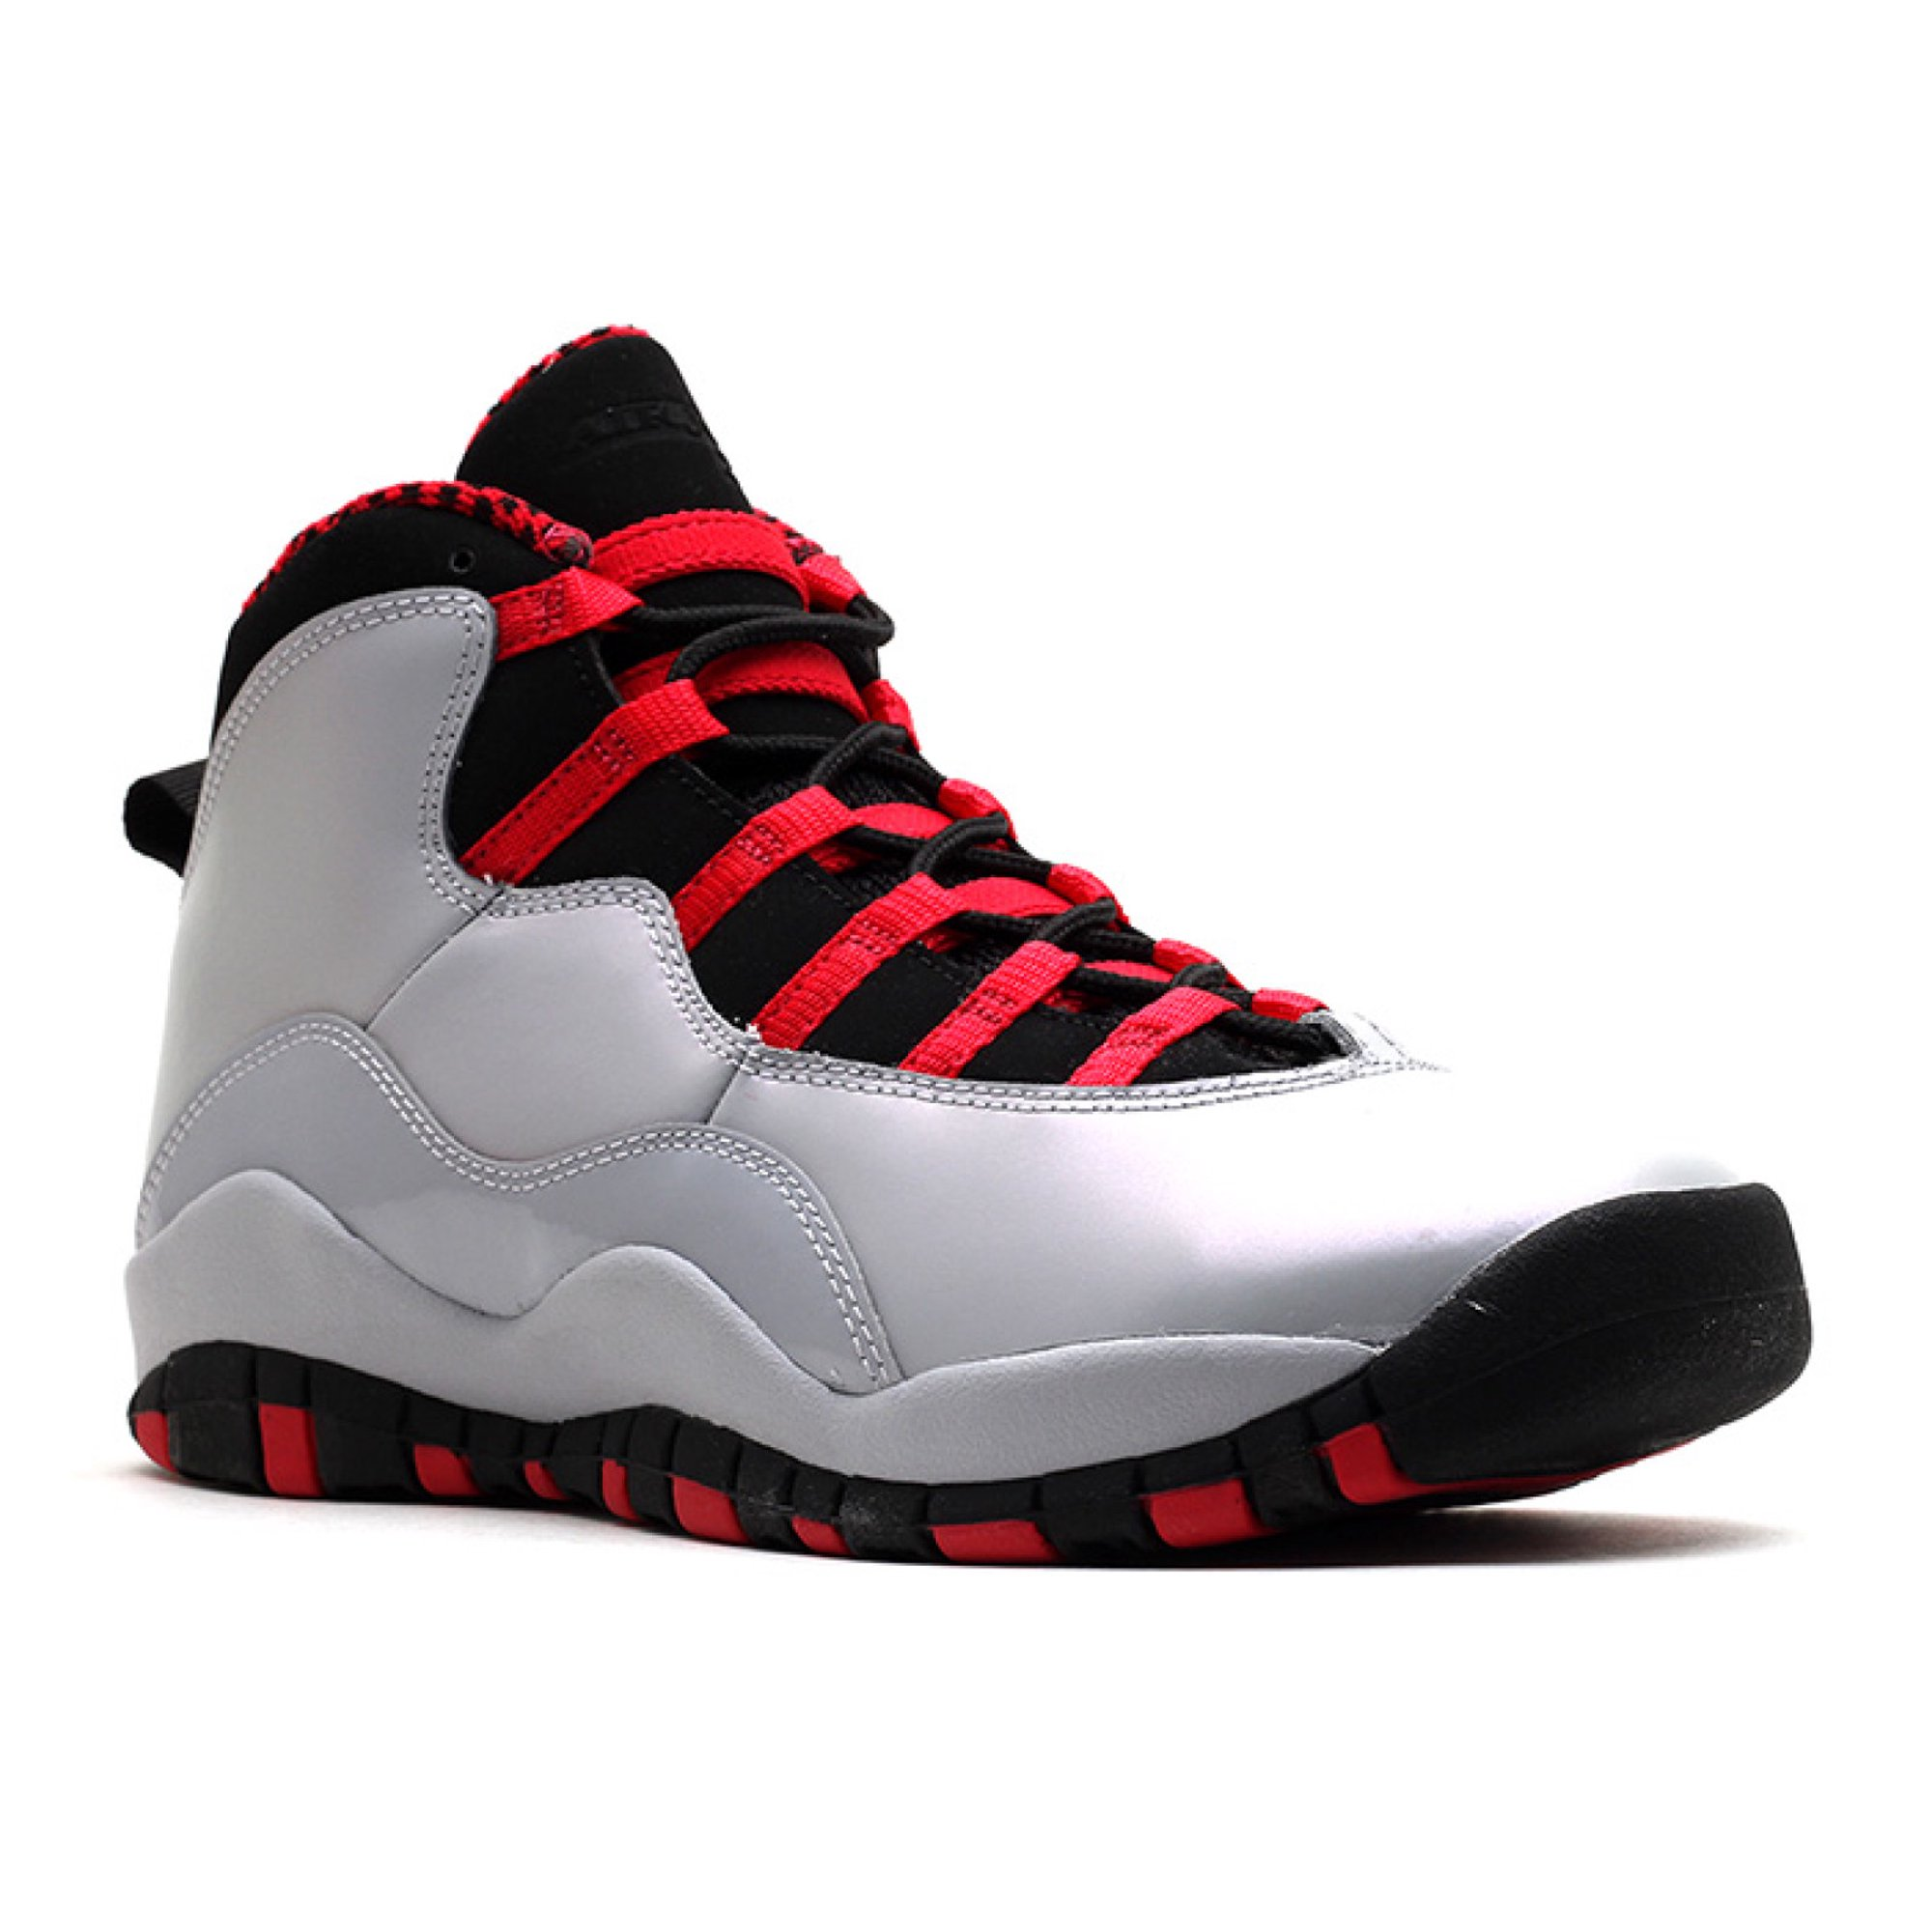 huge discount 7dfc5 535e1 Air Jordan - Unisex - Girls Air Jordan 10 Retro (Gs) - 487211-009 - Size  5.5Y